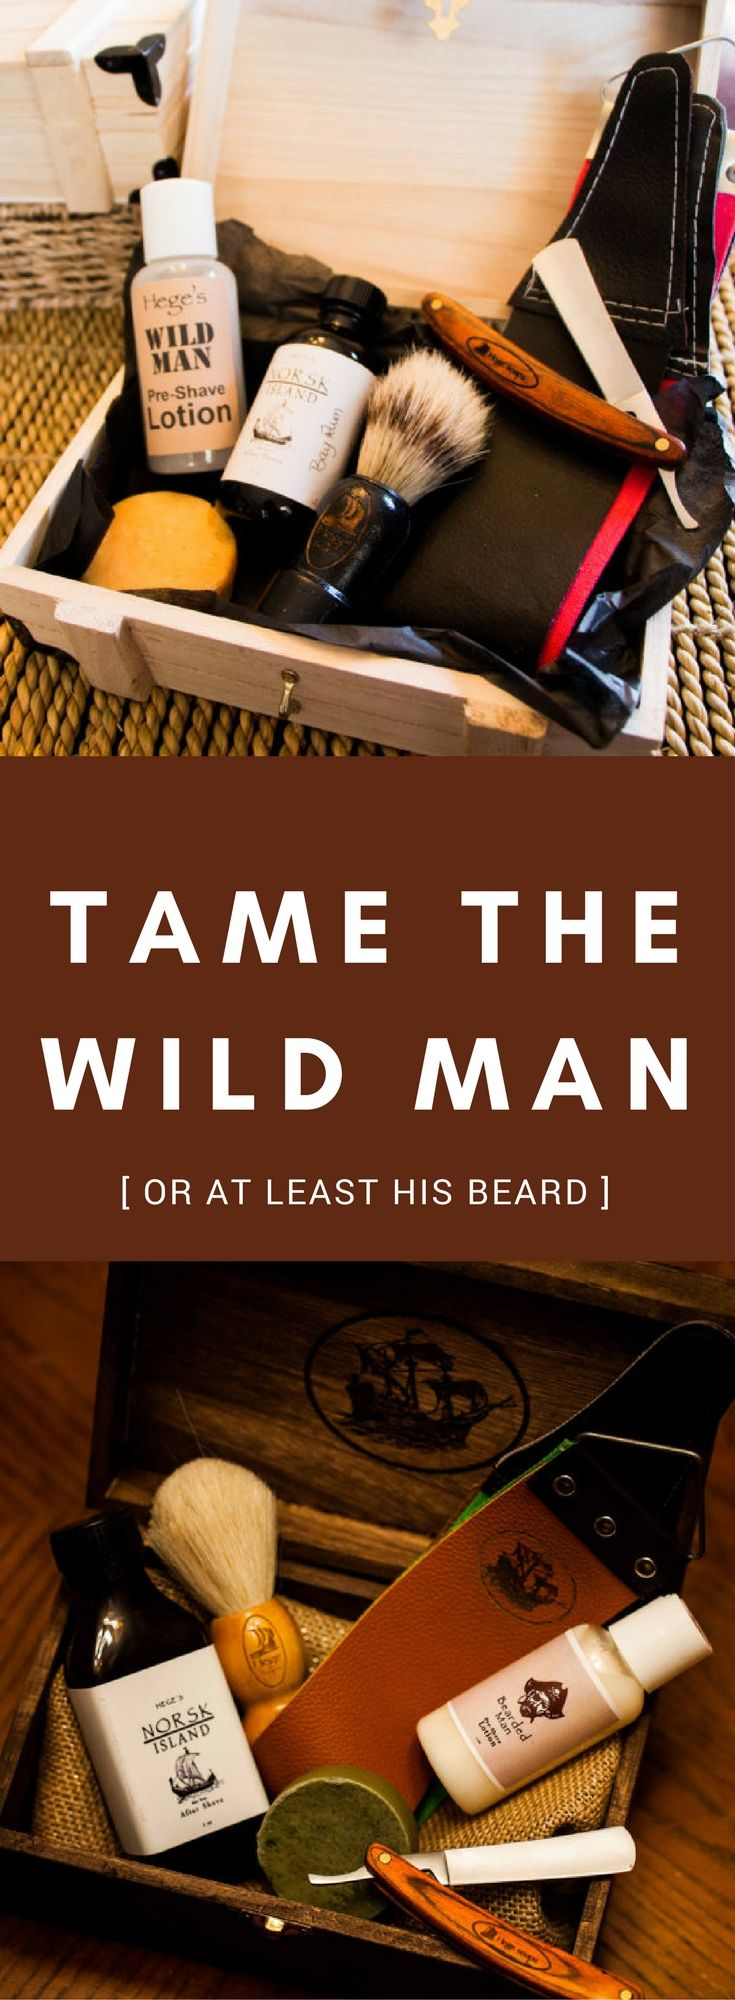 a close comfortable shave just like they used to do in the wild west :) This shaving kit contains a wonderful pre-shave lotion, shaving soap, a boar or badger bristle shaving brush, and a wood handle straight razor, strop for sharpening, and soothing Bay Rum after shave. The perfect gift he'll use all year #etsyad #shavingkit